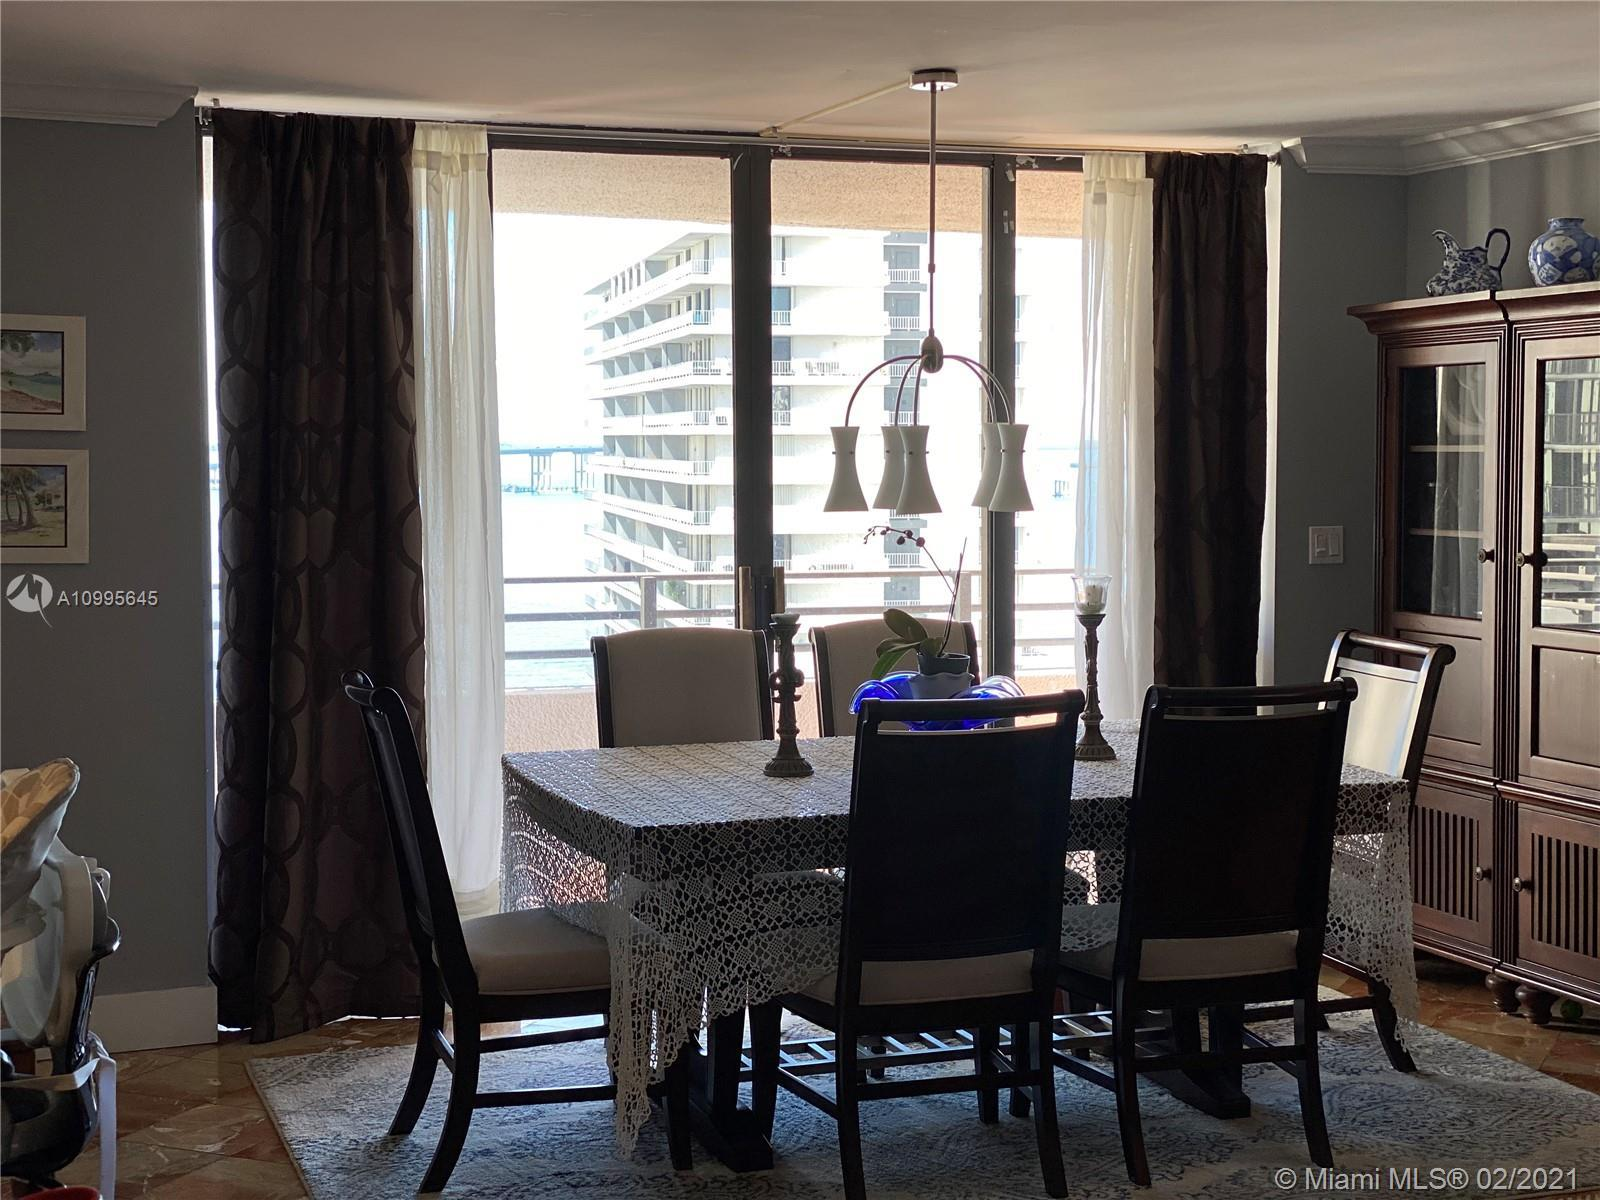 BEAUTIFUL 3/2, OCEAN FACING APARTMENT WITH WRAP-AROUND BALCONIES IN THE MIDDLE OF BRICKELL, BOUTIQUE